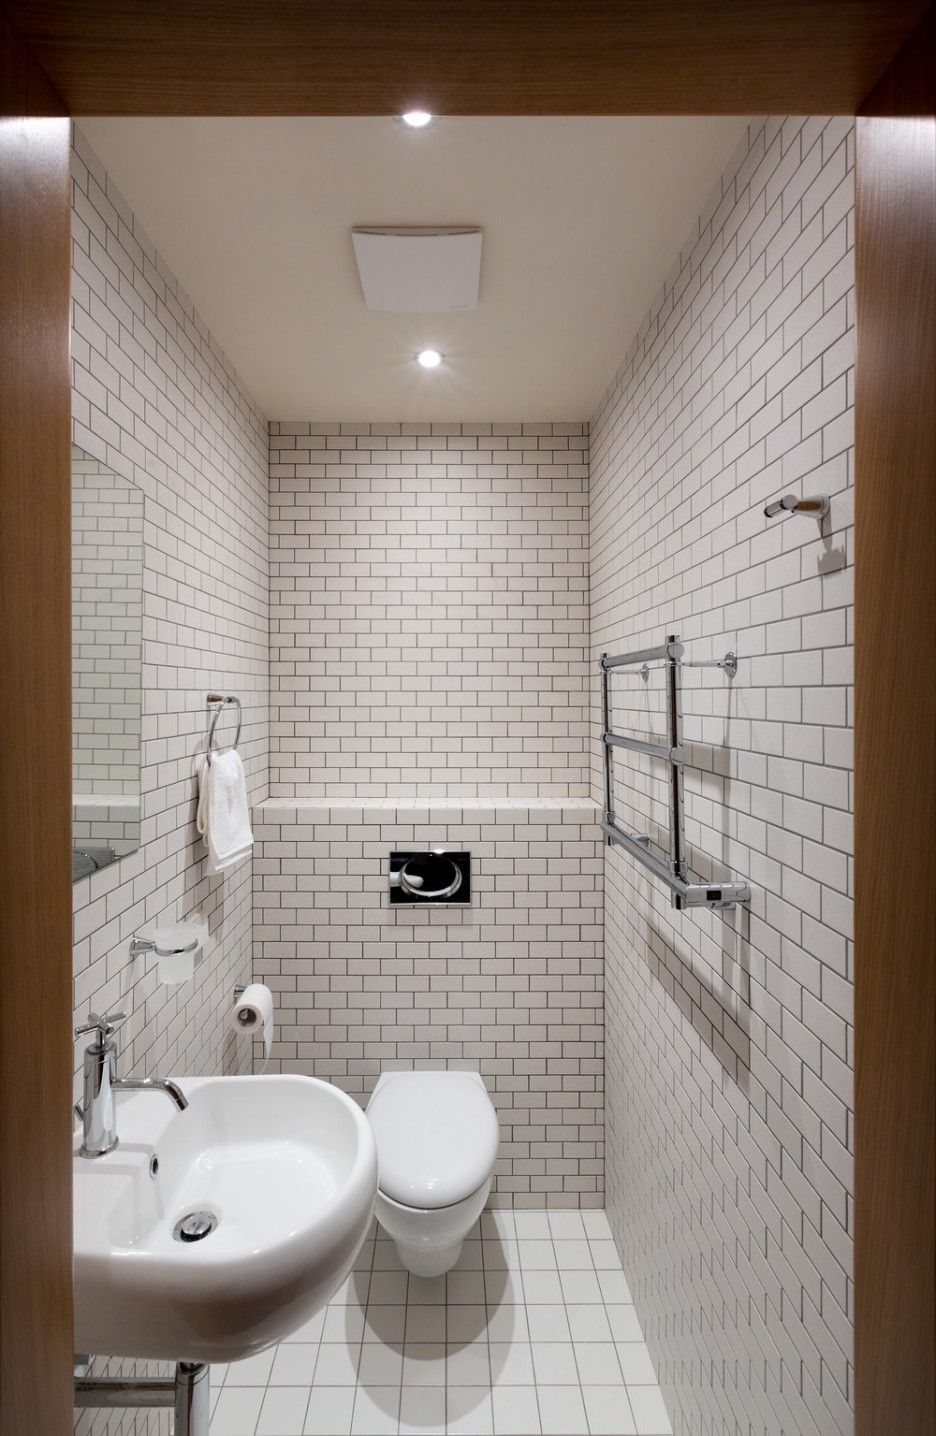 Chic Minimalist Interior In Smart Design Exquisite Small Toilet Room In Kiev Apartment Design Finished